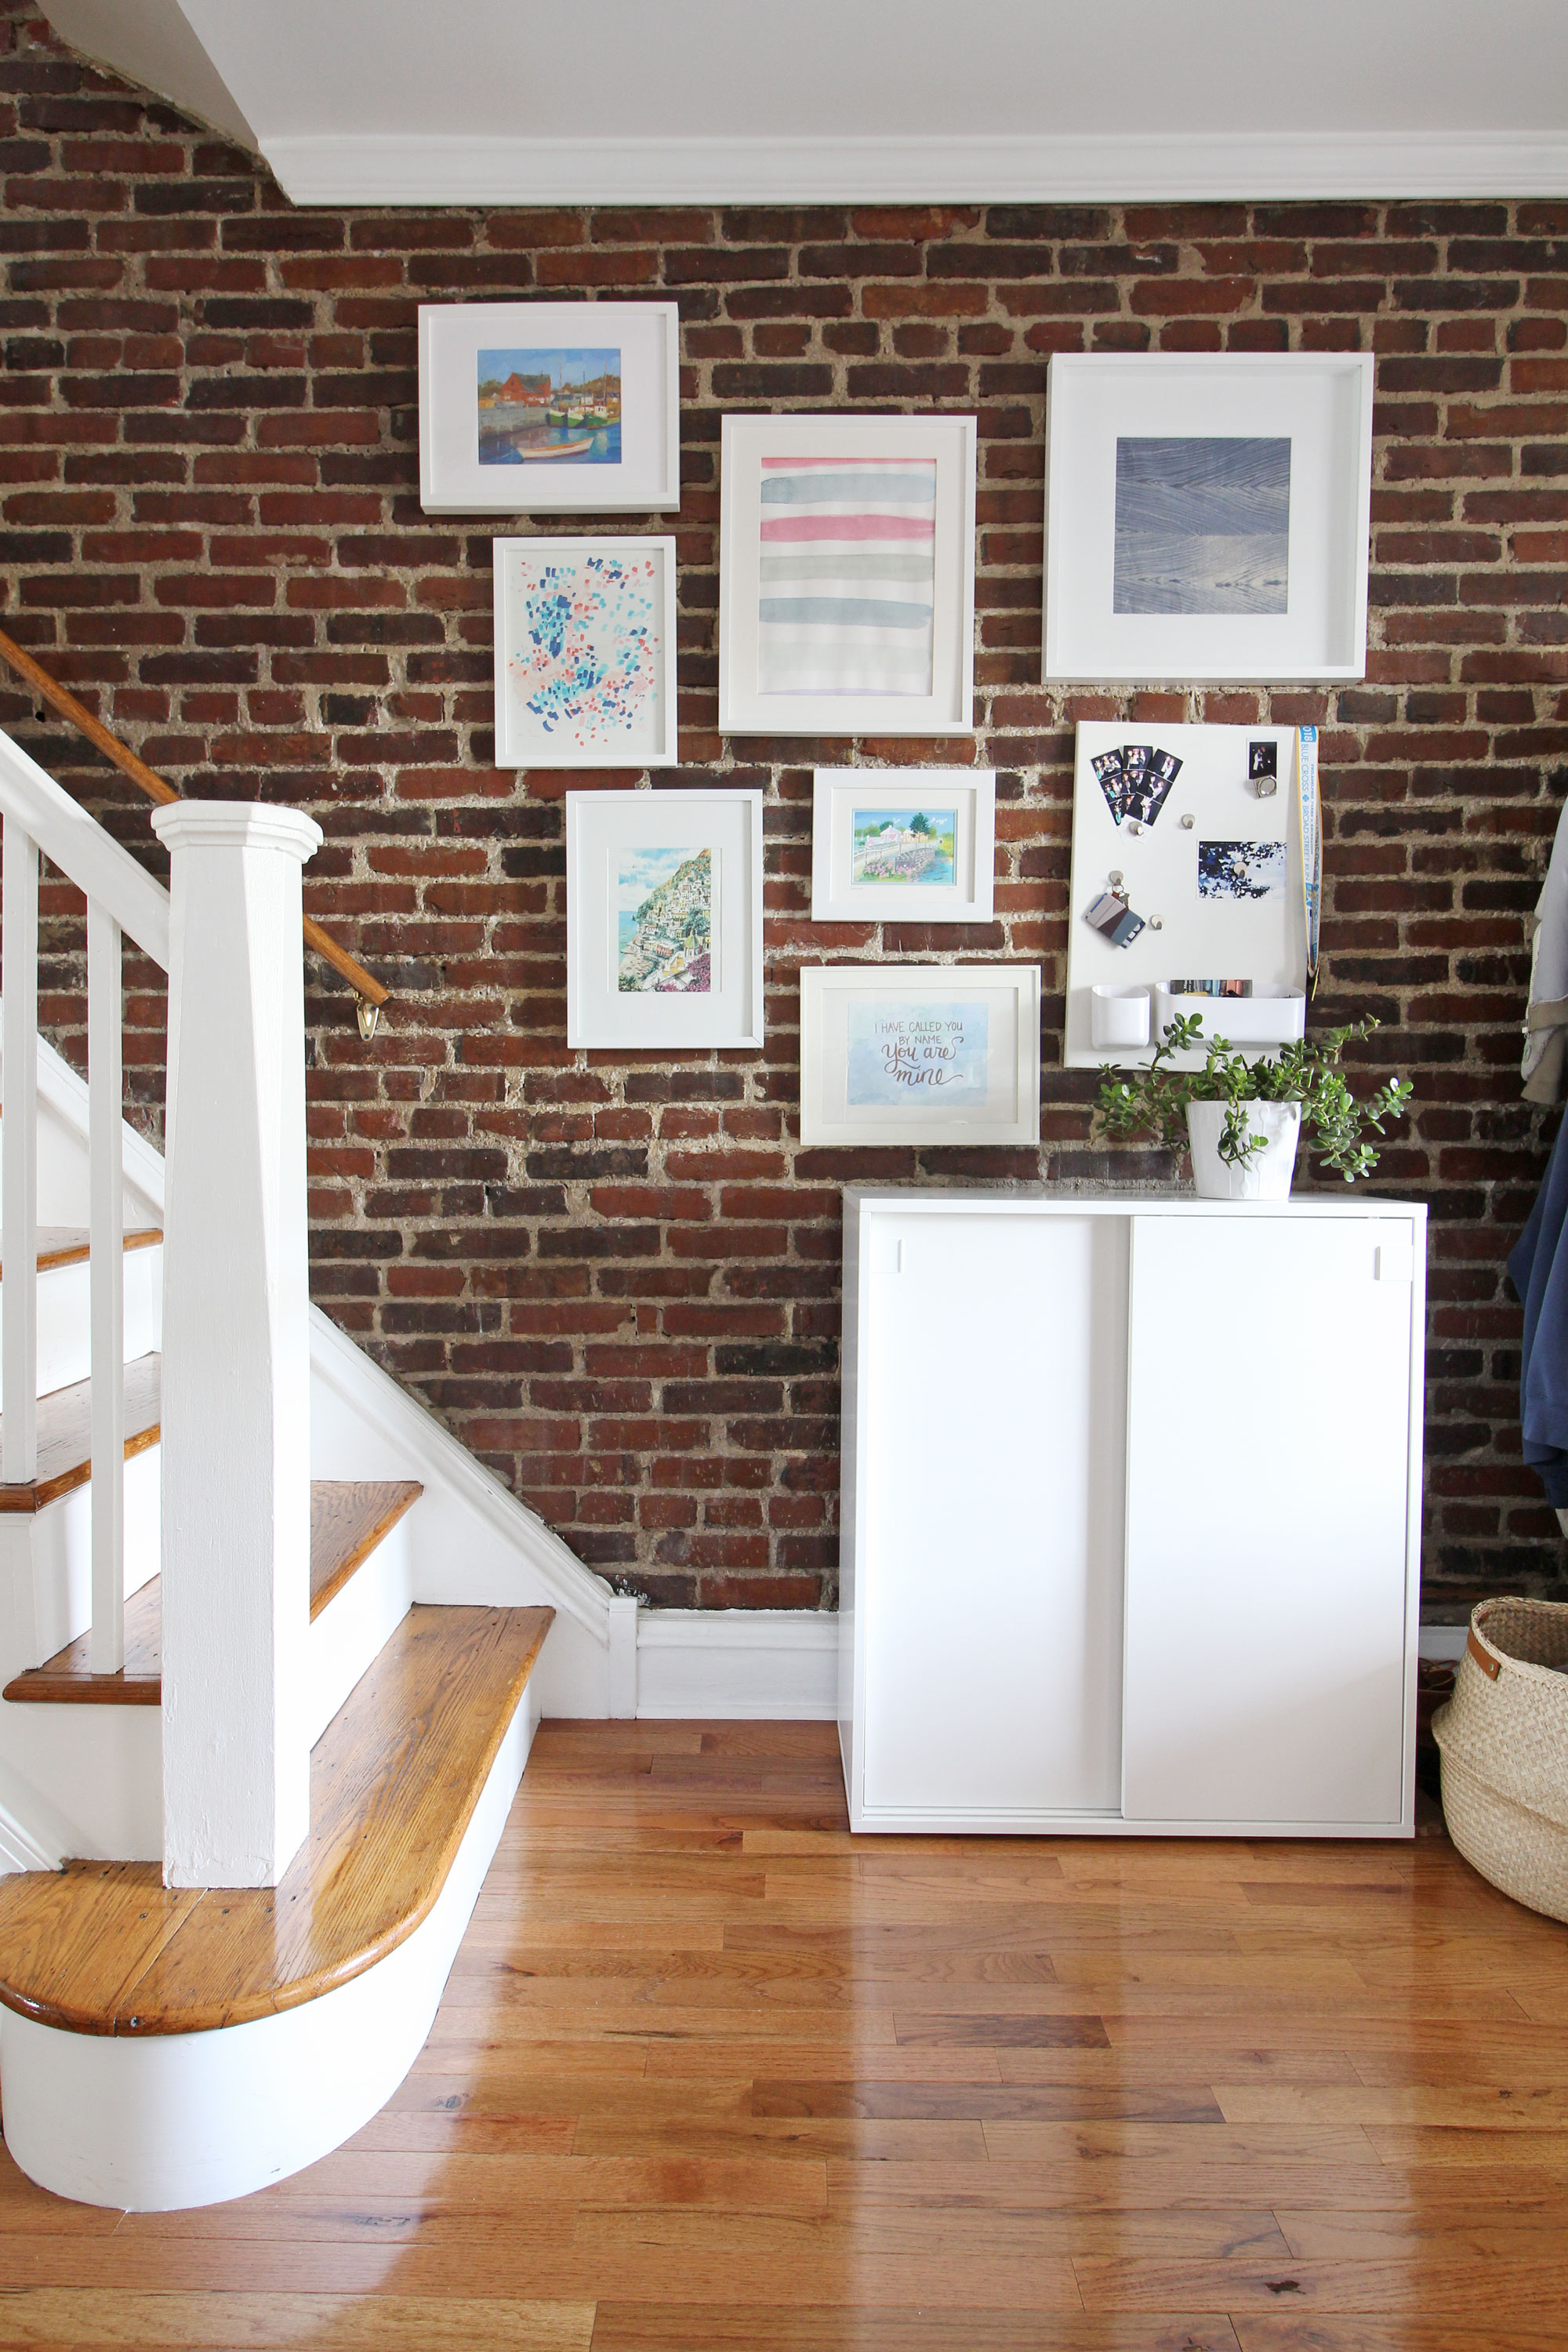 Taking a look back at the top 10 blog posts for Mix & Match Design Company of 2018! Come see what was popular in interior decorating, design tips, e-design projects, and more. This post, all about creating a functional and beautiful entryway in your home when you don't have one, made the list!